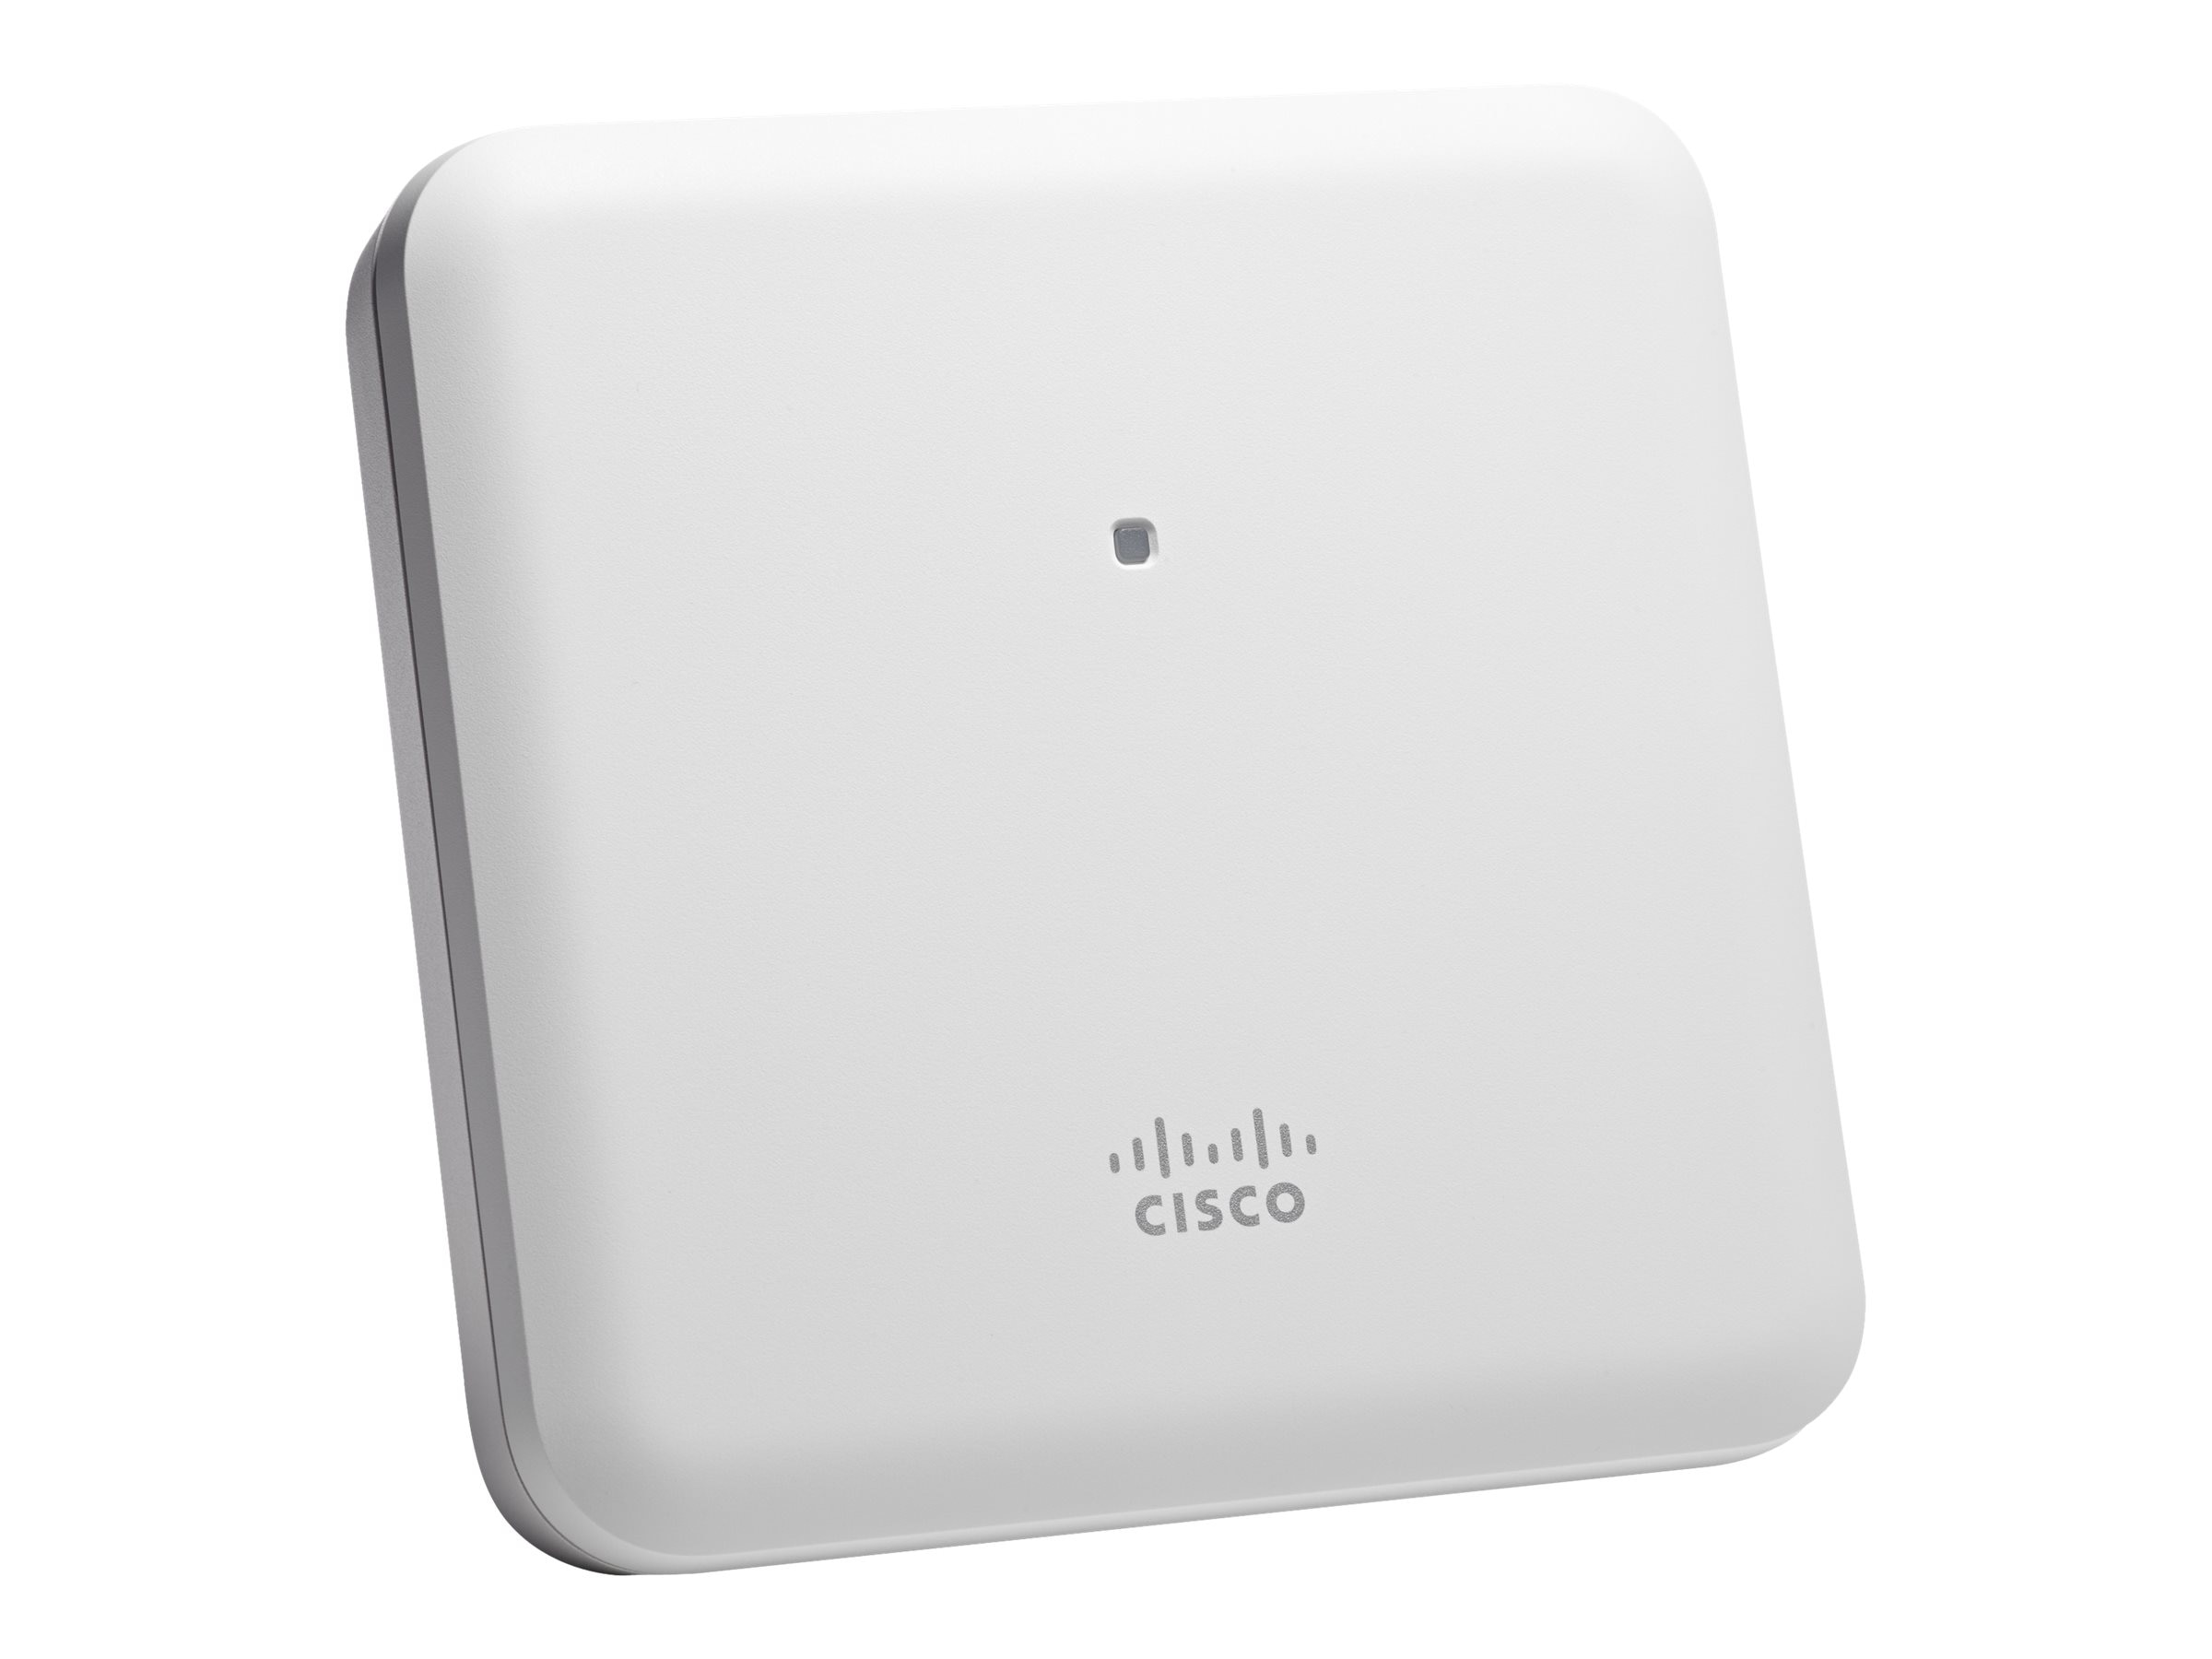 Cisco 802.11AC Wave 2 4X4:4SS  Internal Antenna B Region, AIR-AP1852I-B-K9, 29322118, Wireless Access Points & Bridges